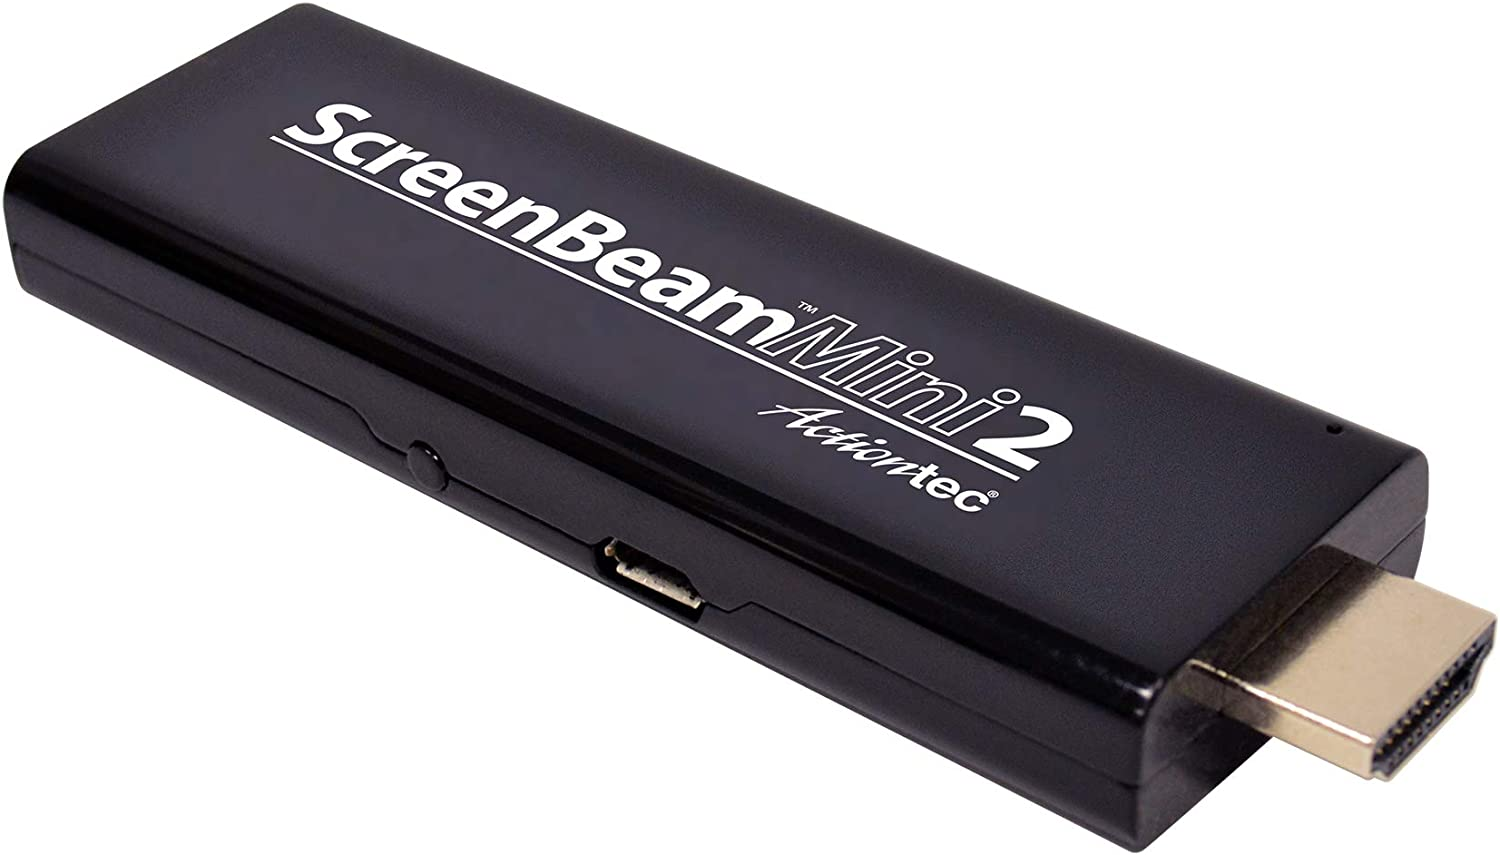 ScreenBeam (Previously Actiontec) Mini2 Wireless Display Adapter/Receiver with Miracast (SBWD60A01) – Mirror Phone/Tablet/Laptop to HDTV, No Apps Required, Supports Select Android & Windows Devices